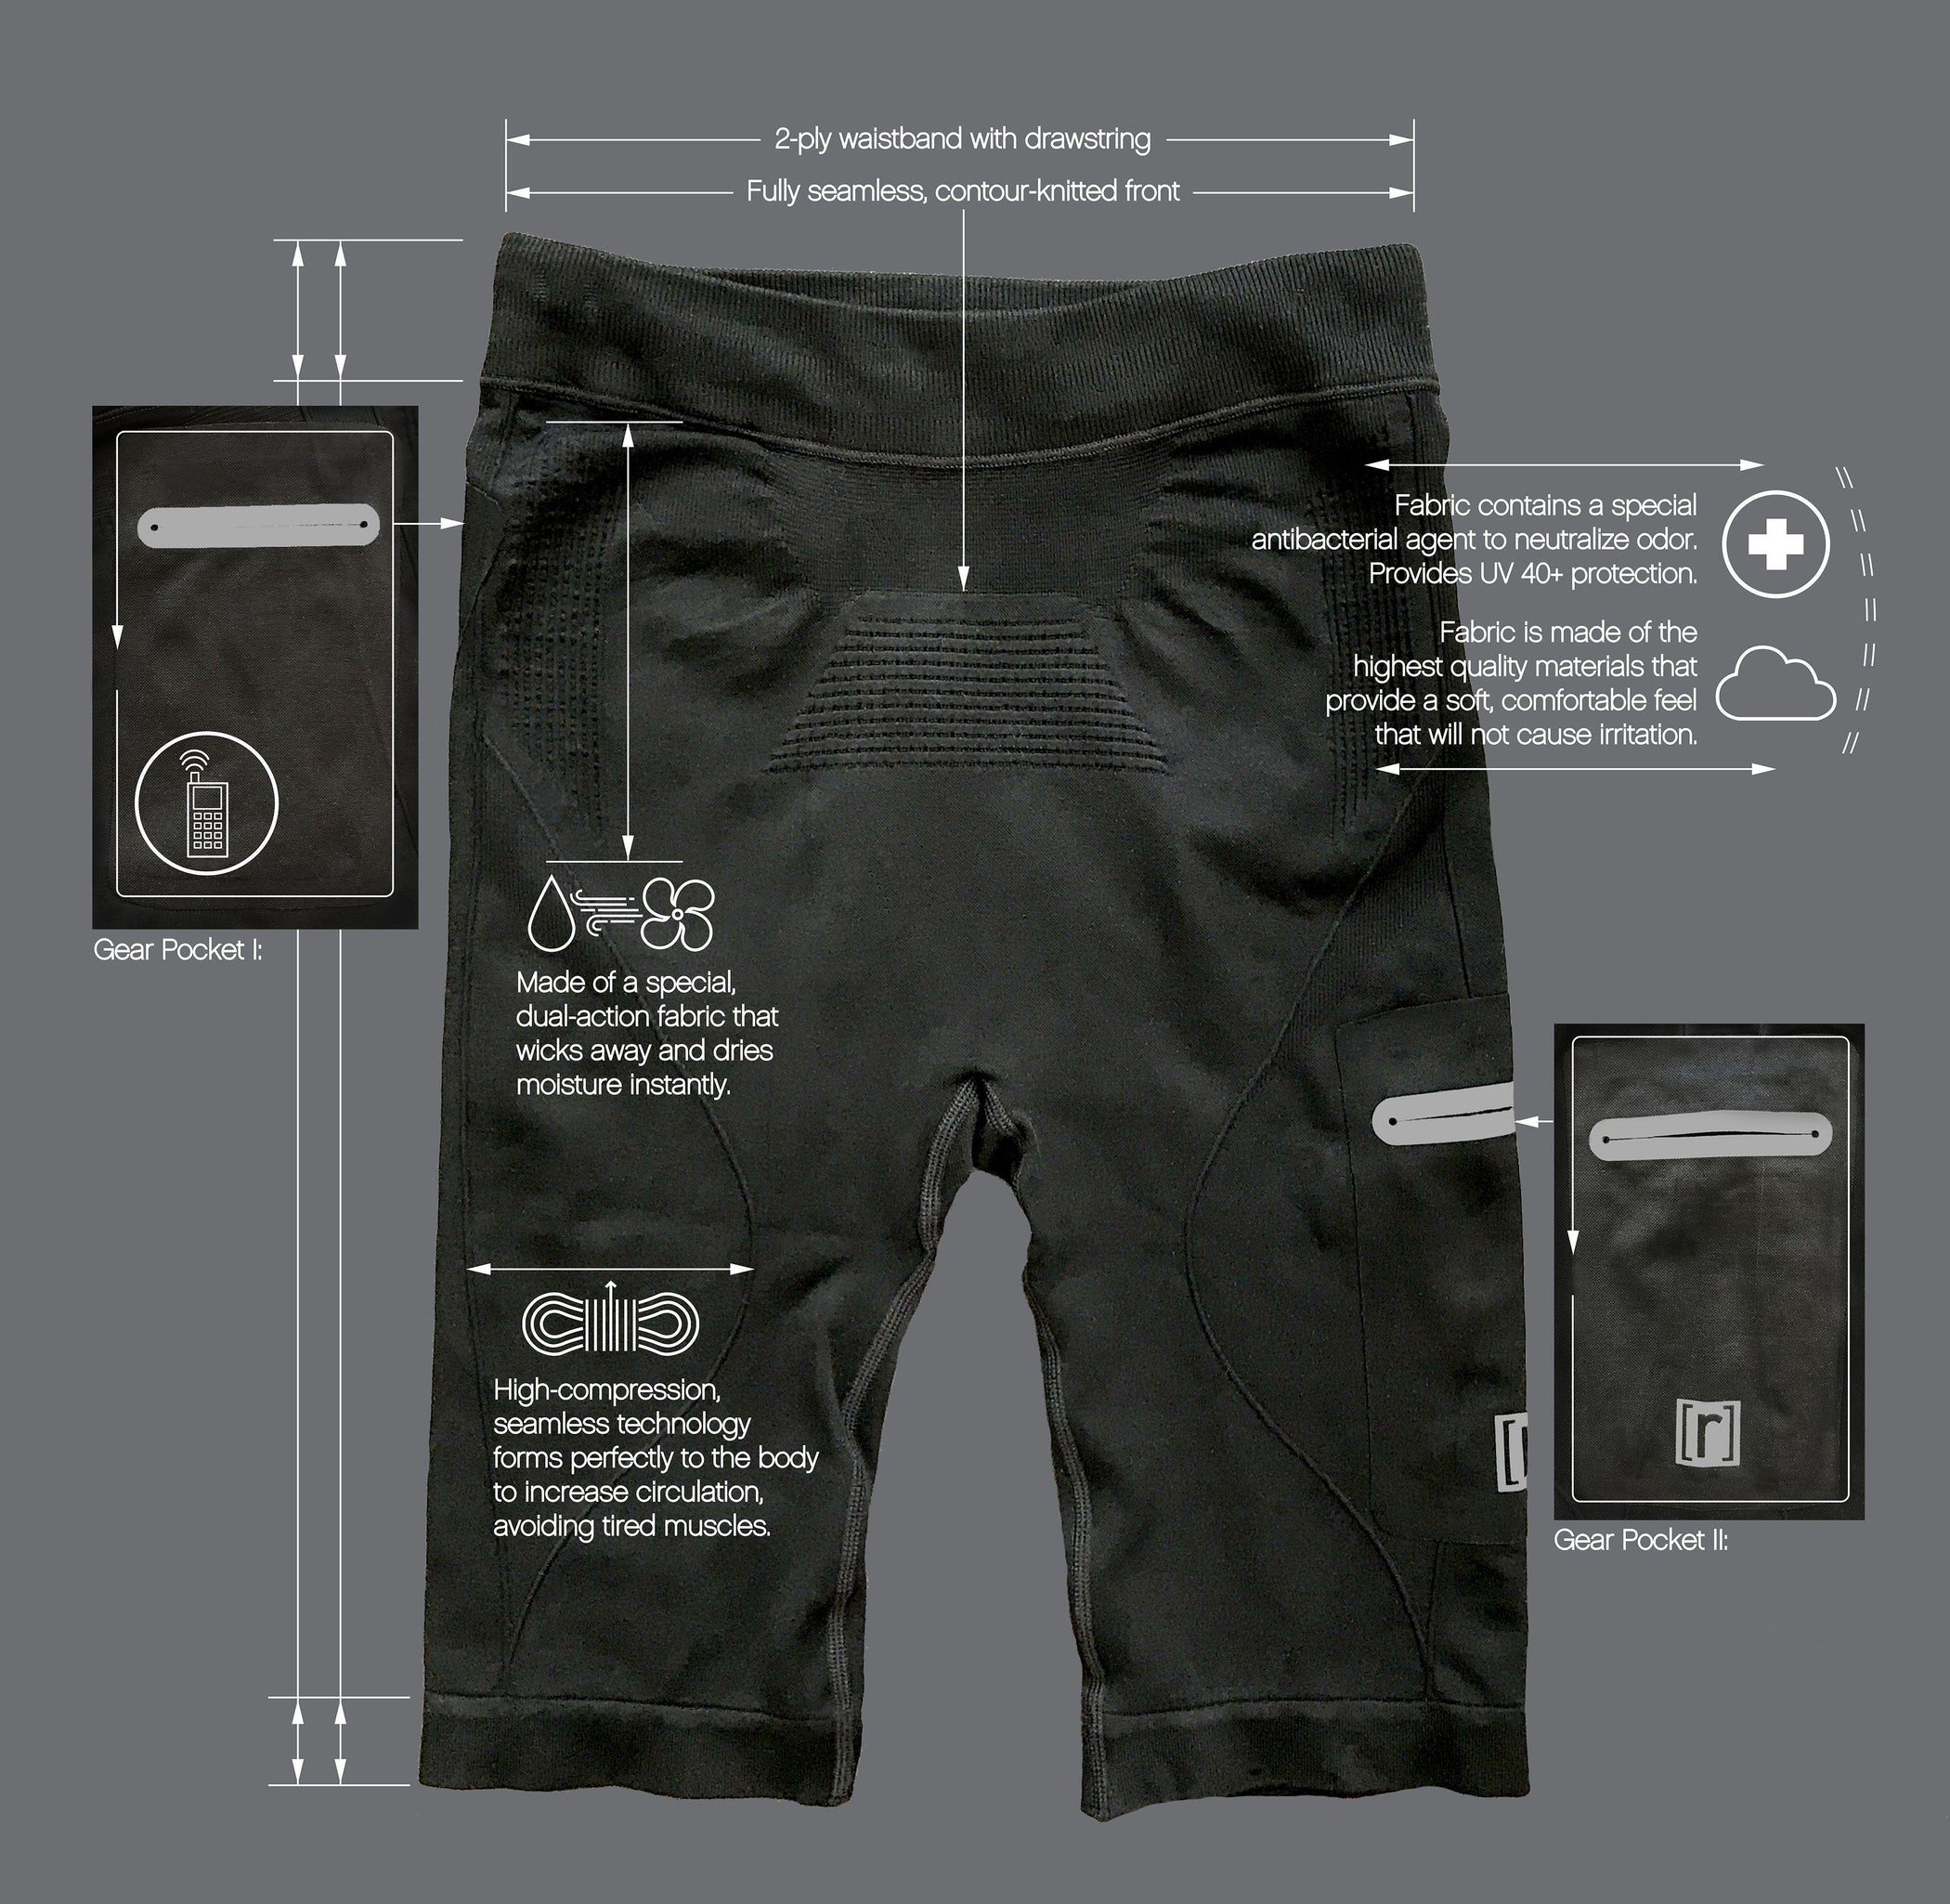 Black compression pant with patented fully seamless front, pocket. Tech info.